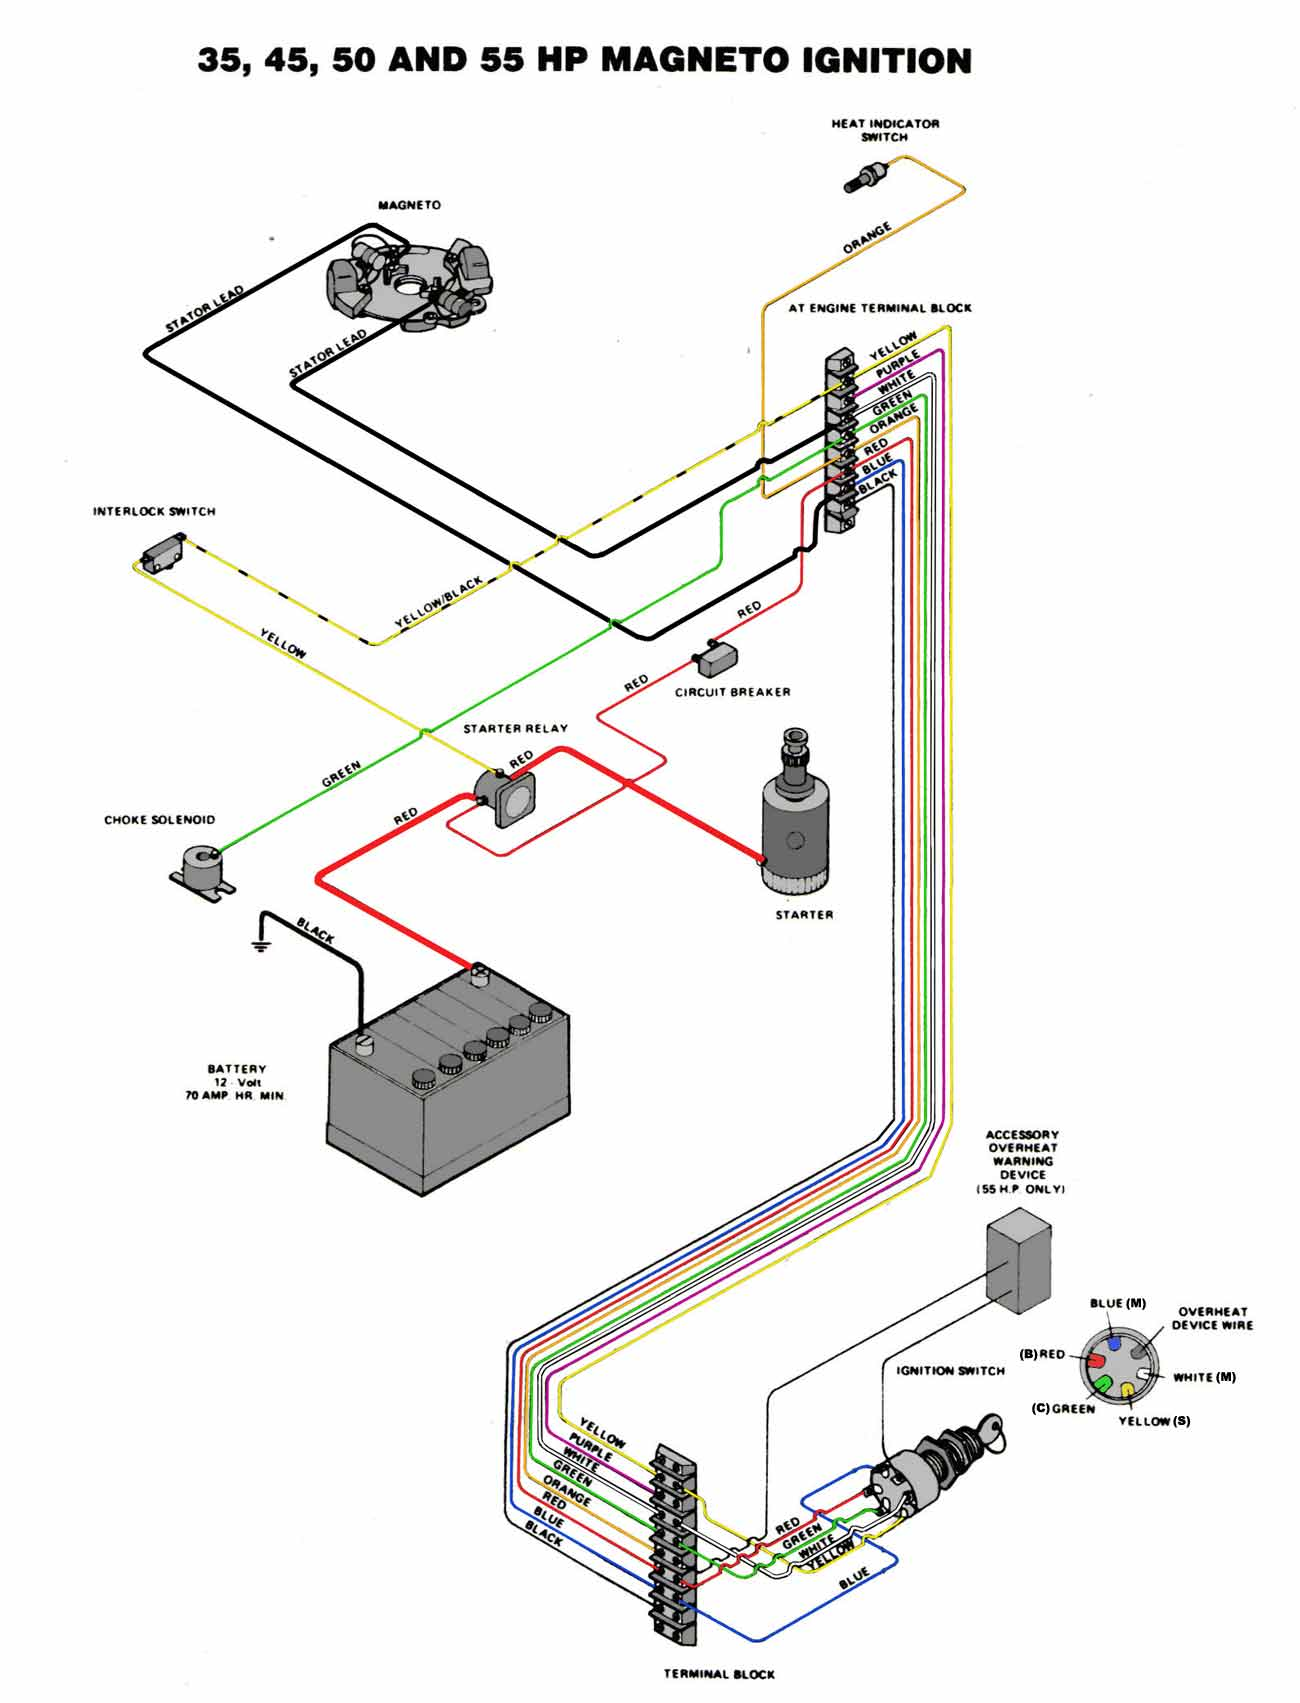 Miraculous Boat Engine Wiring Diagram Basic Electronics Wiring Diagram Wiring Cloud Filiciilluminateatxorg